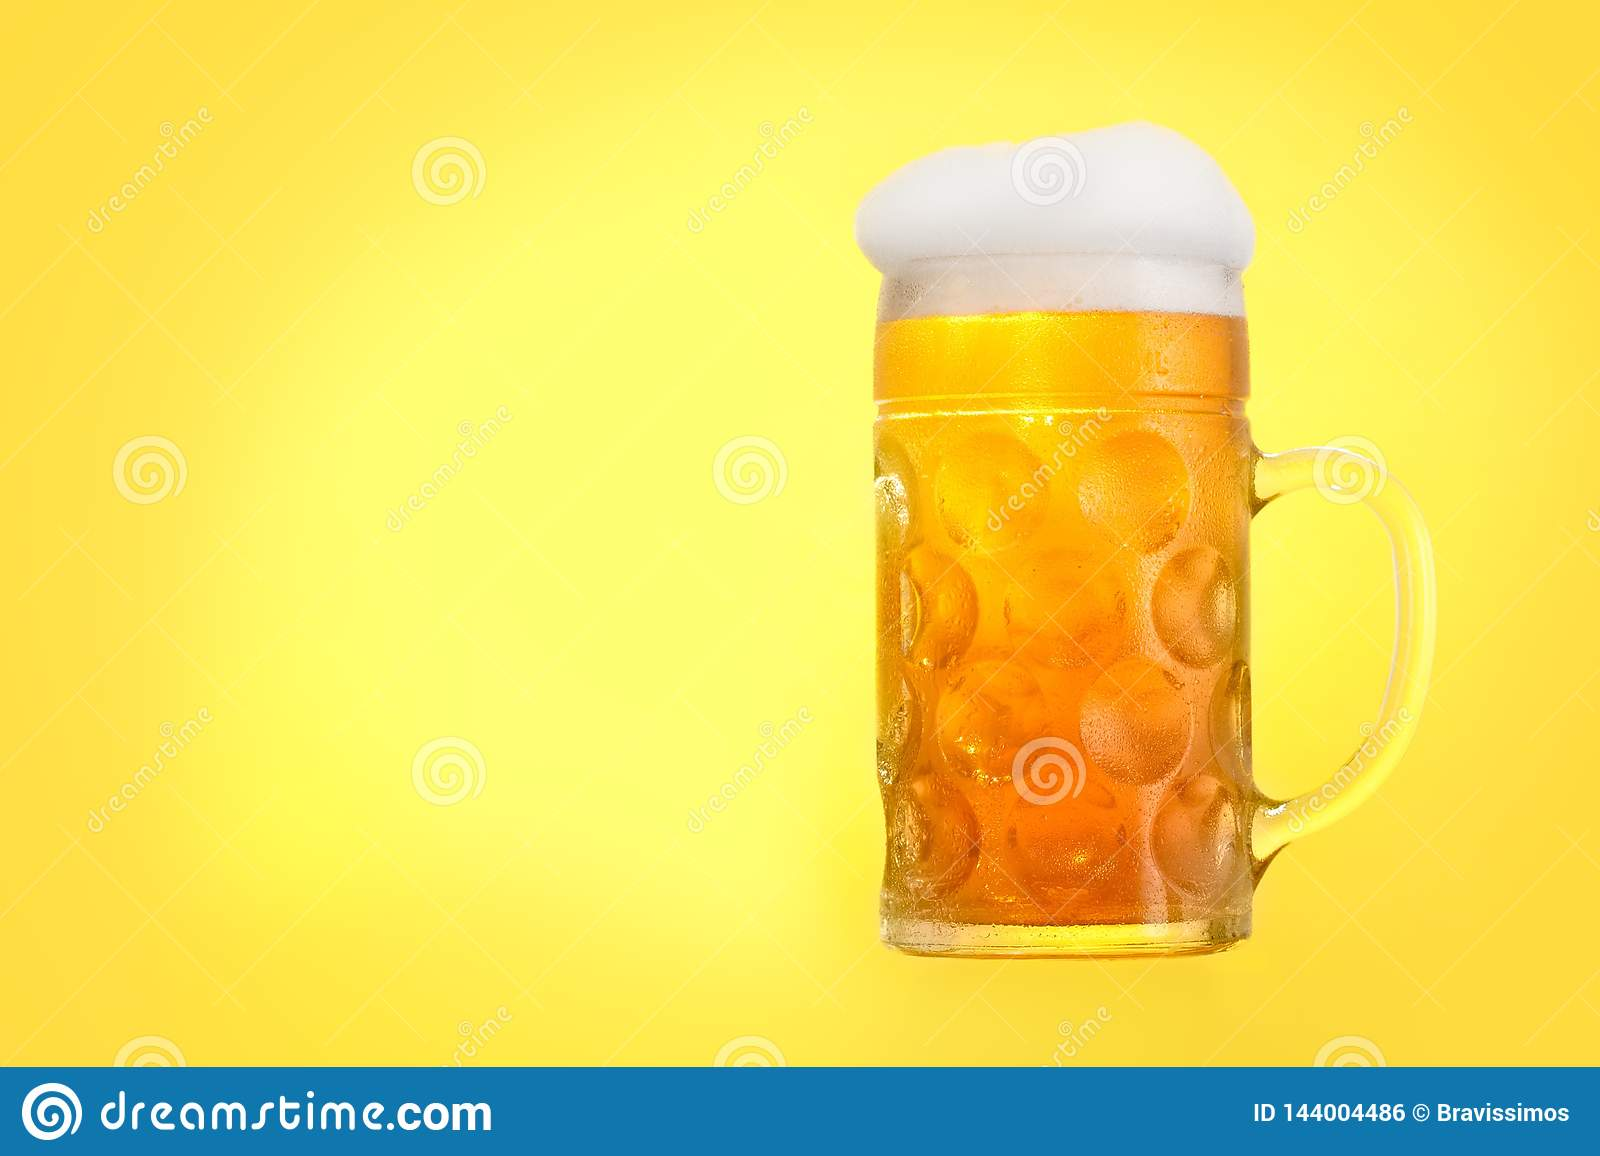 Golden beer in glass with foam, alcohol beverage,  pint